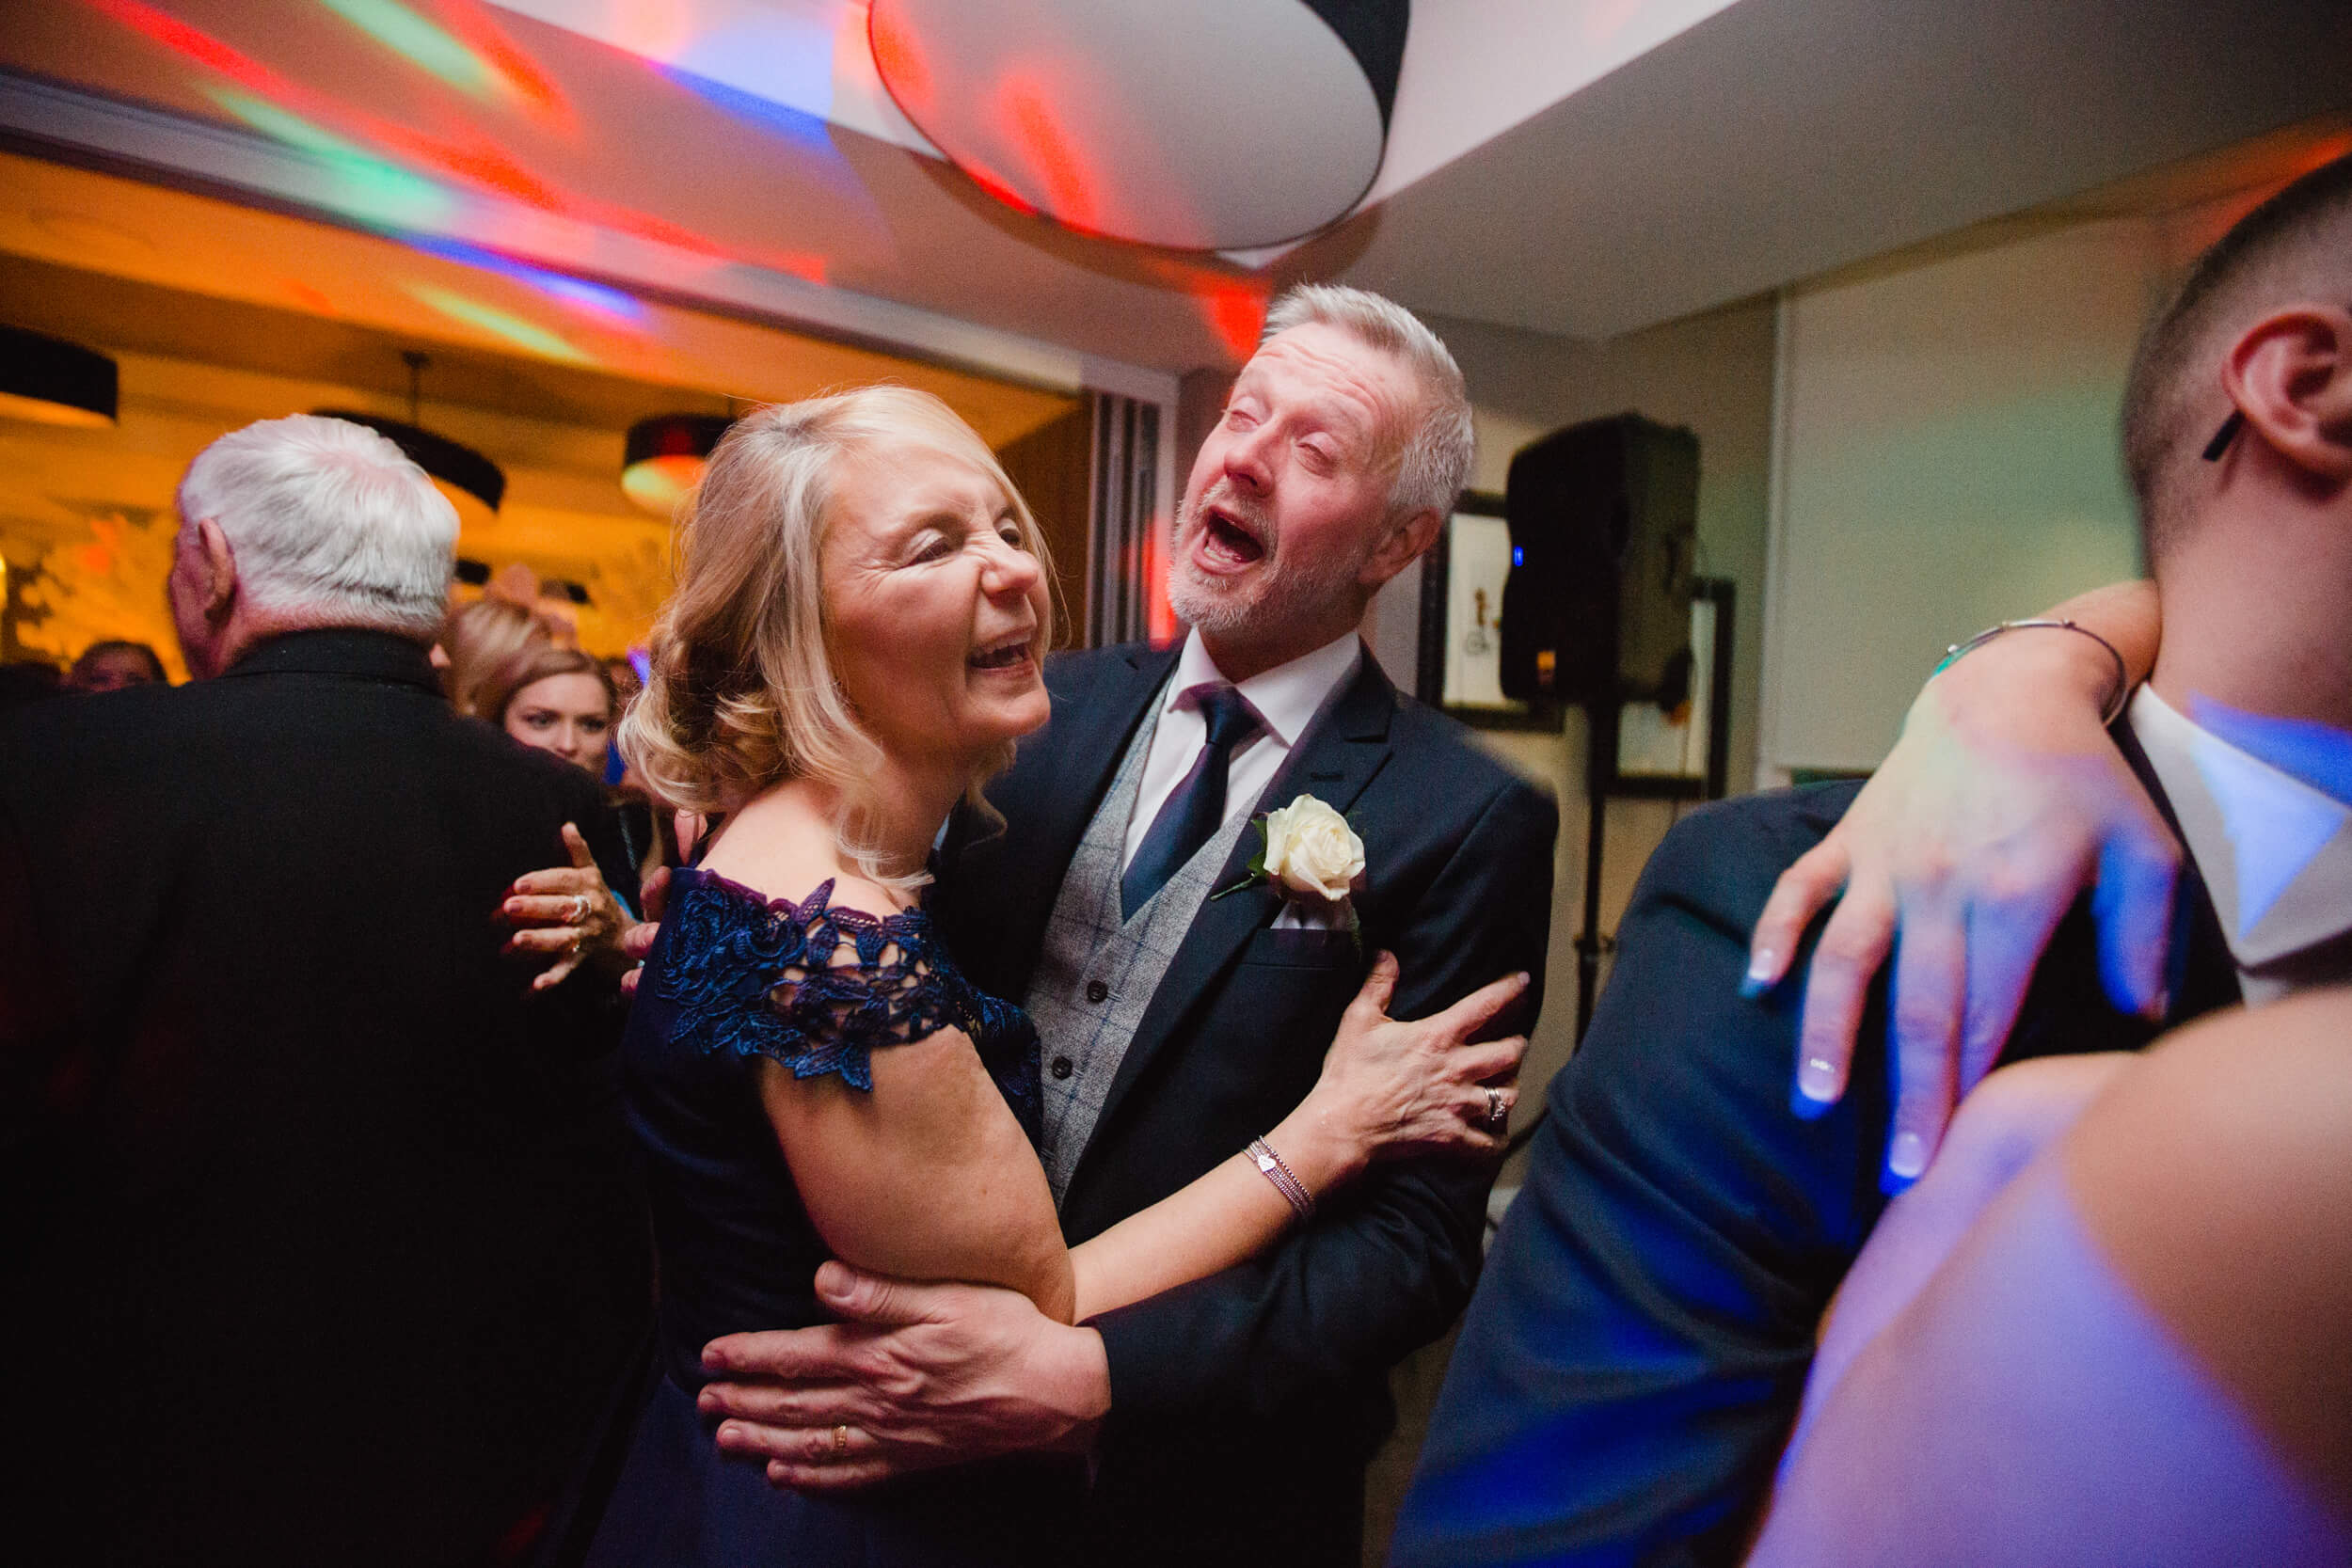 mother and father of groom dancing after first dance